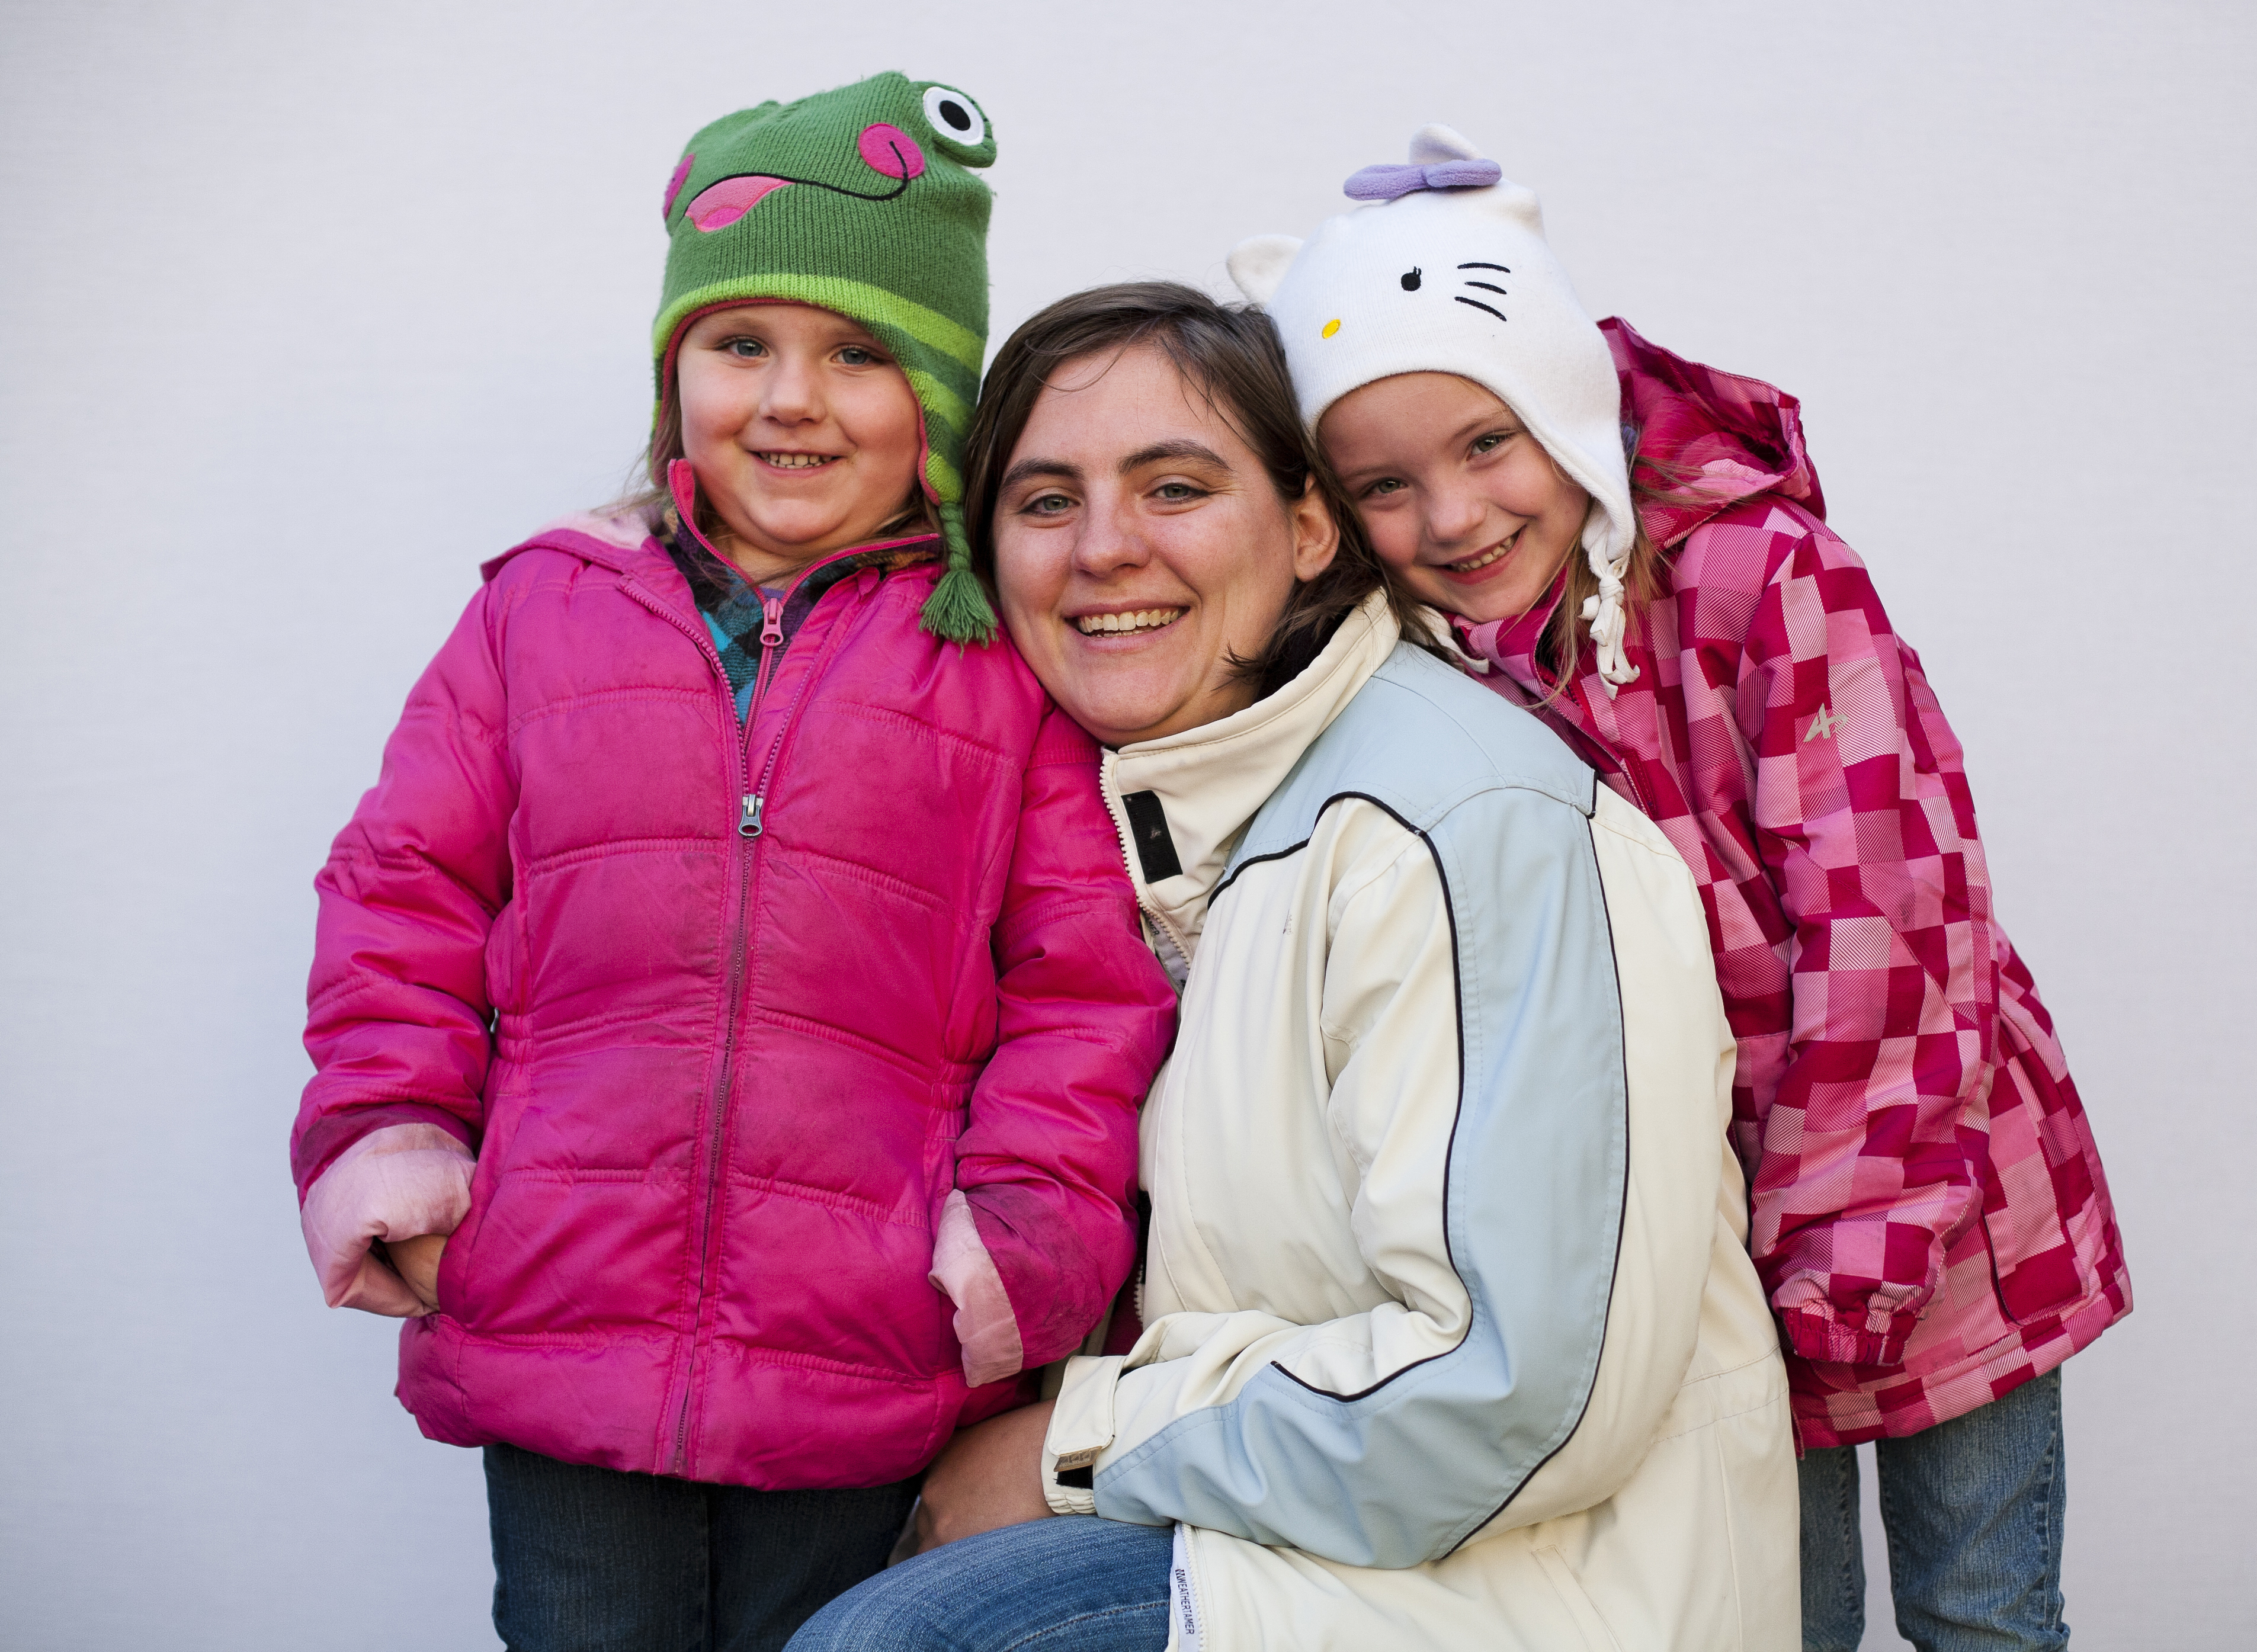 Mom and two daughters photo